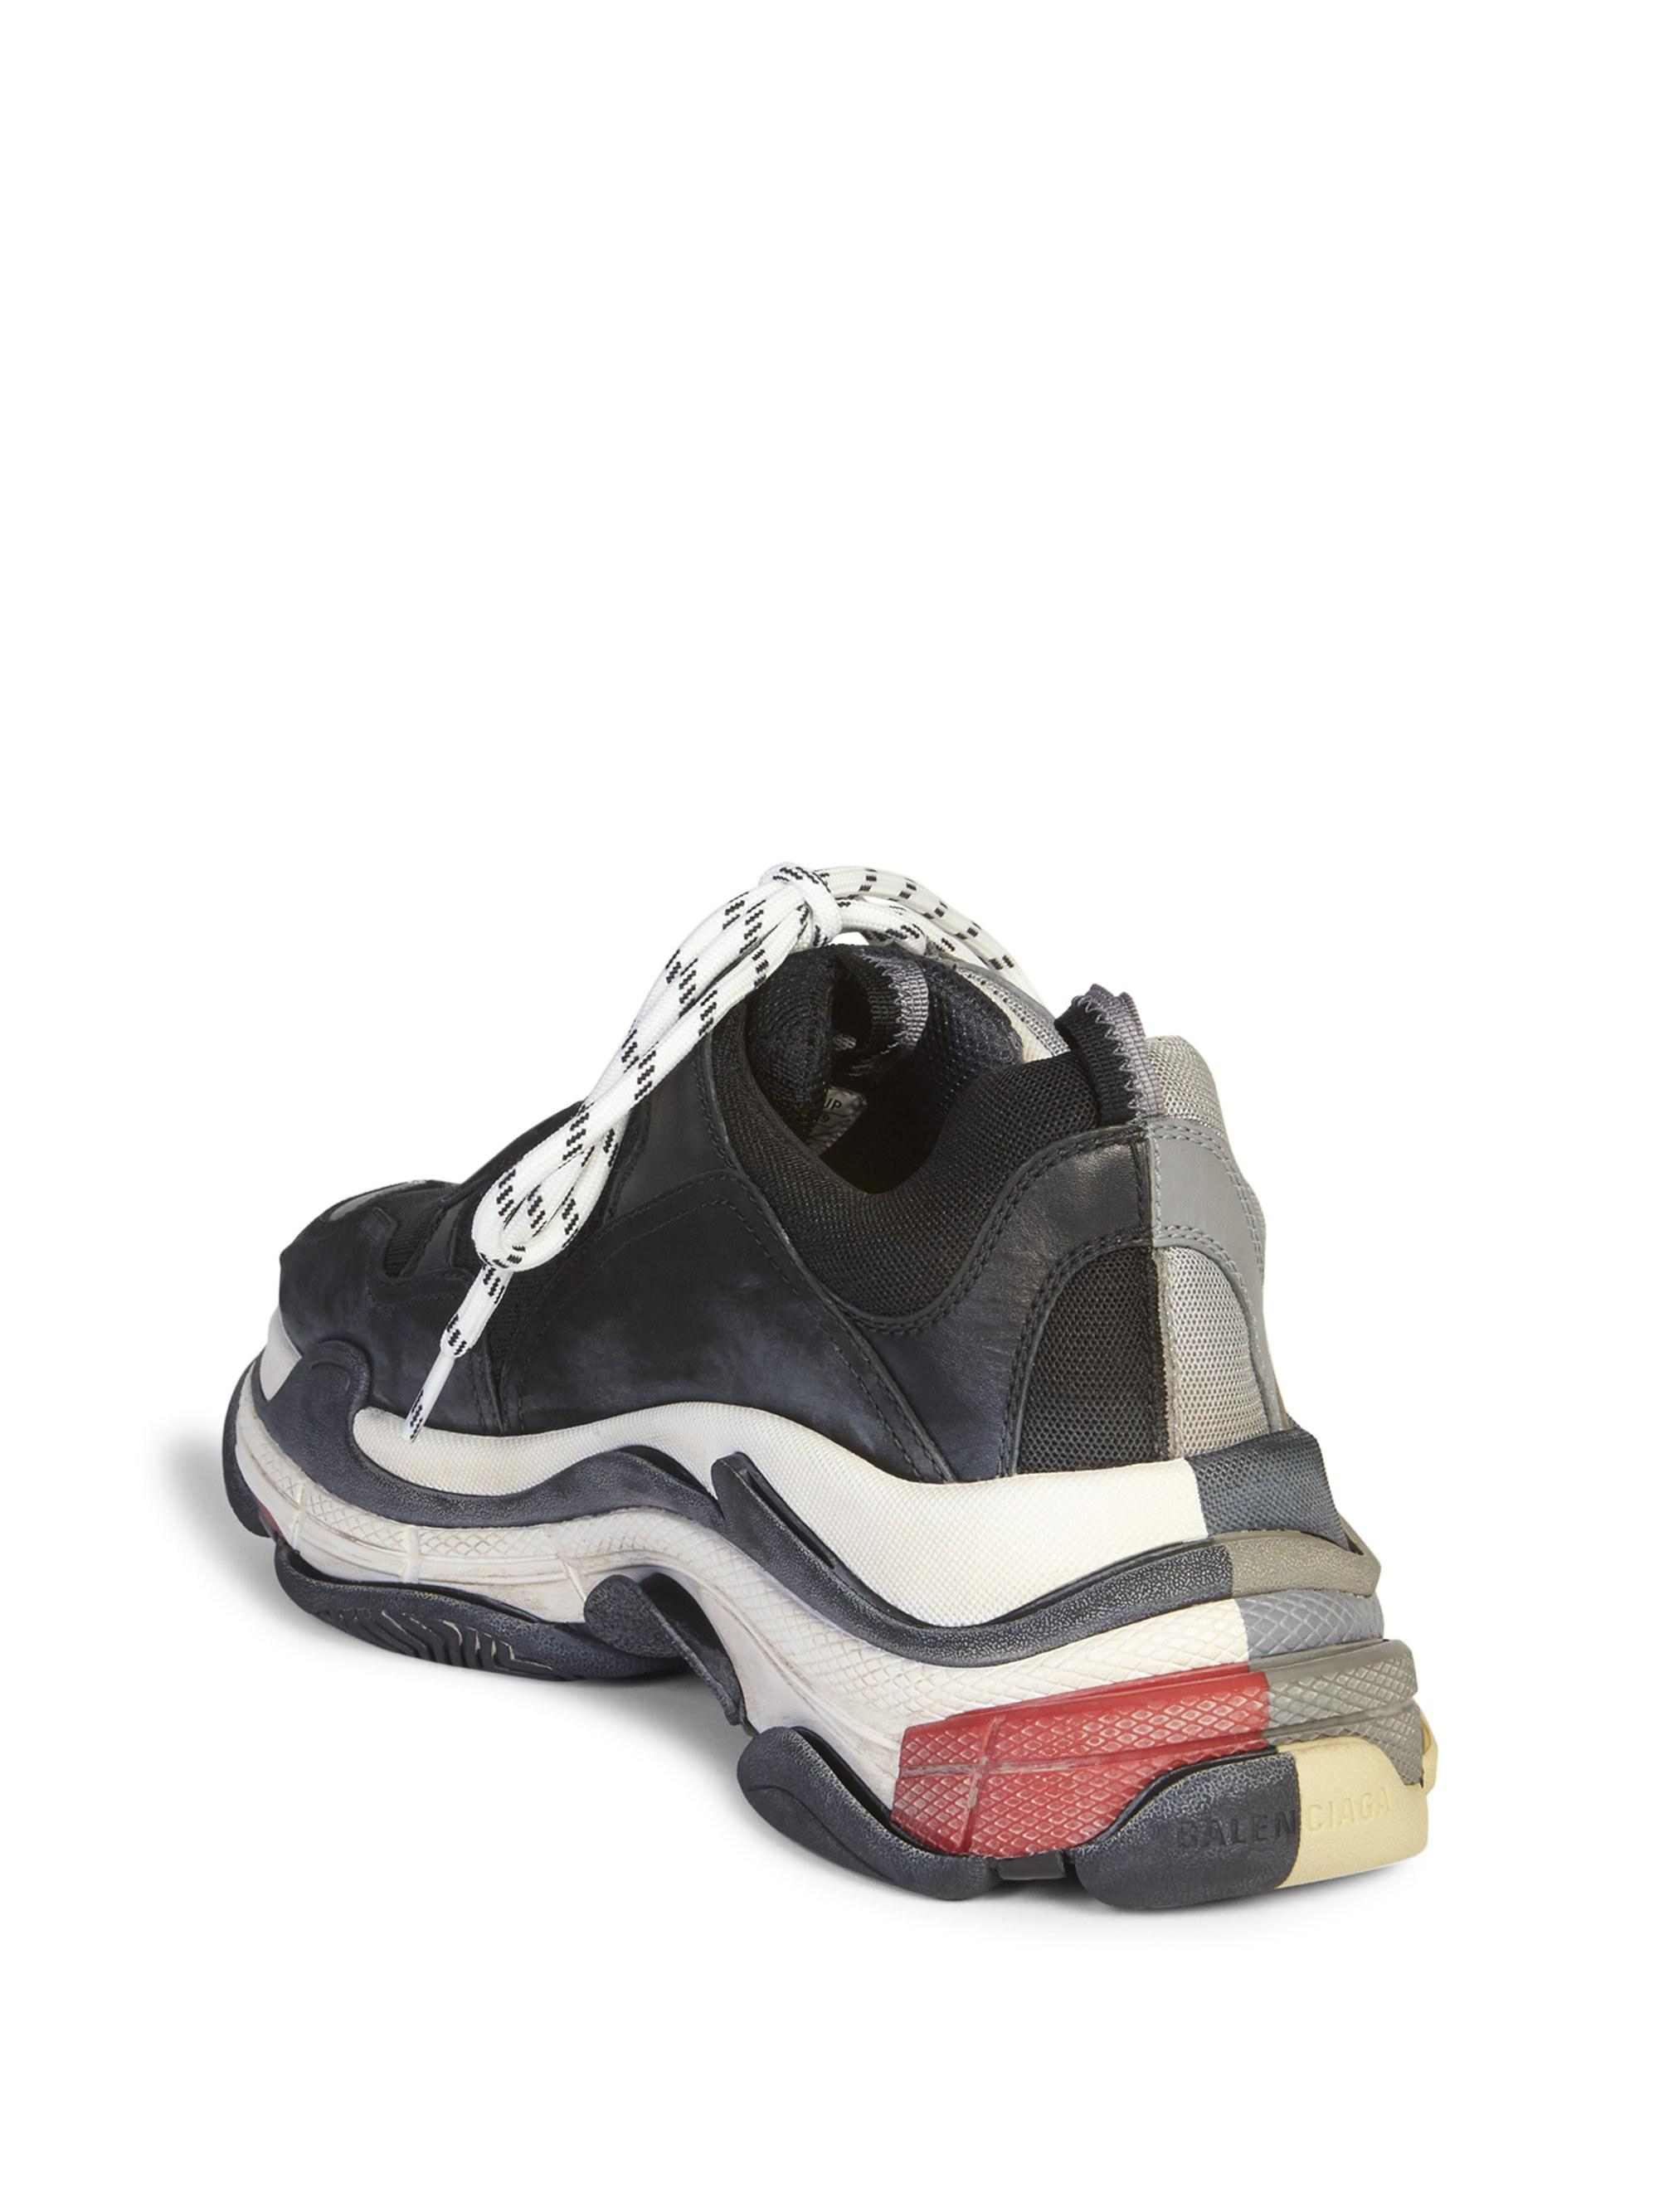 2f0d91bd00b9 Balenciaga Triple S Trainer Sneakers in Gray for Men - Save 4% - Lyst